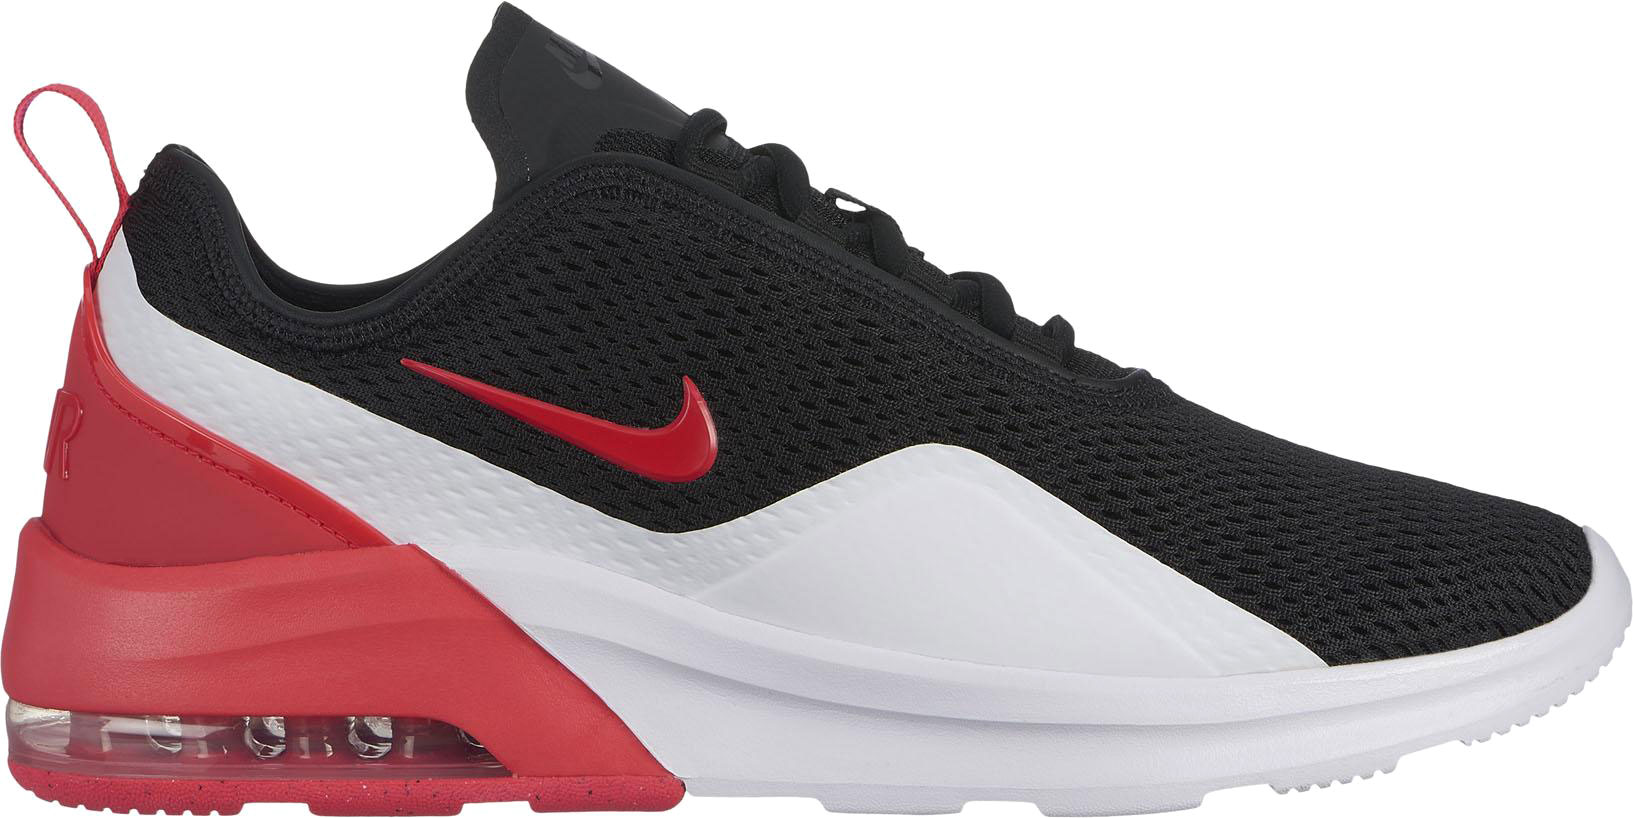 huge discount 92652 fee0b Кроссовки Nike Air Max Motion 2 AO0266-005 44 (11.5) 29.5 см (